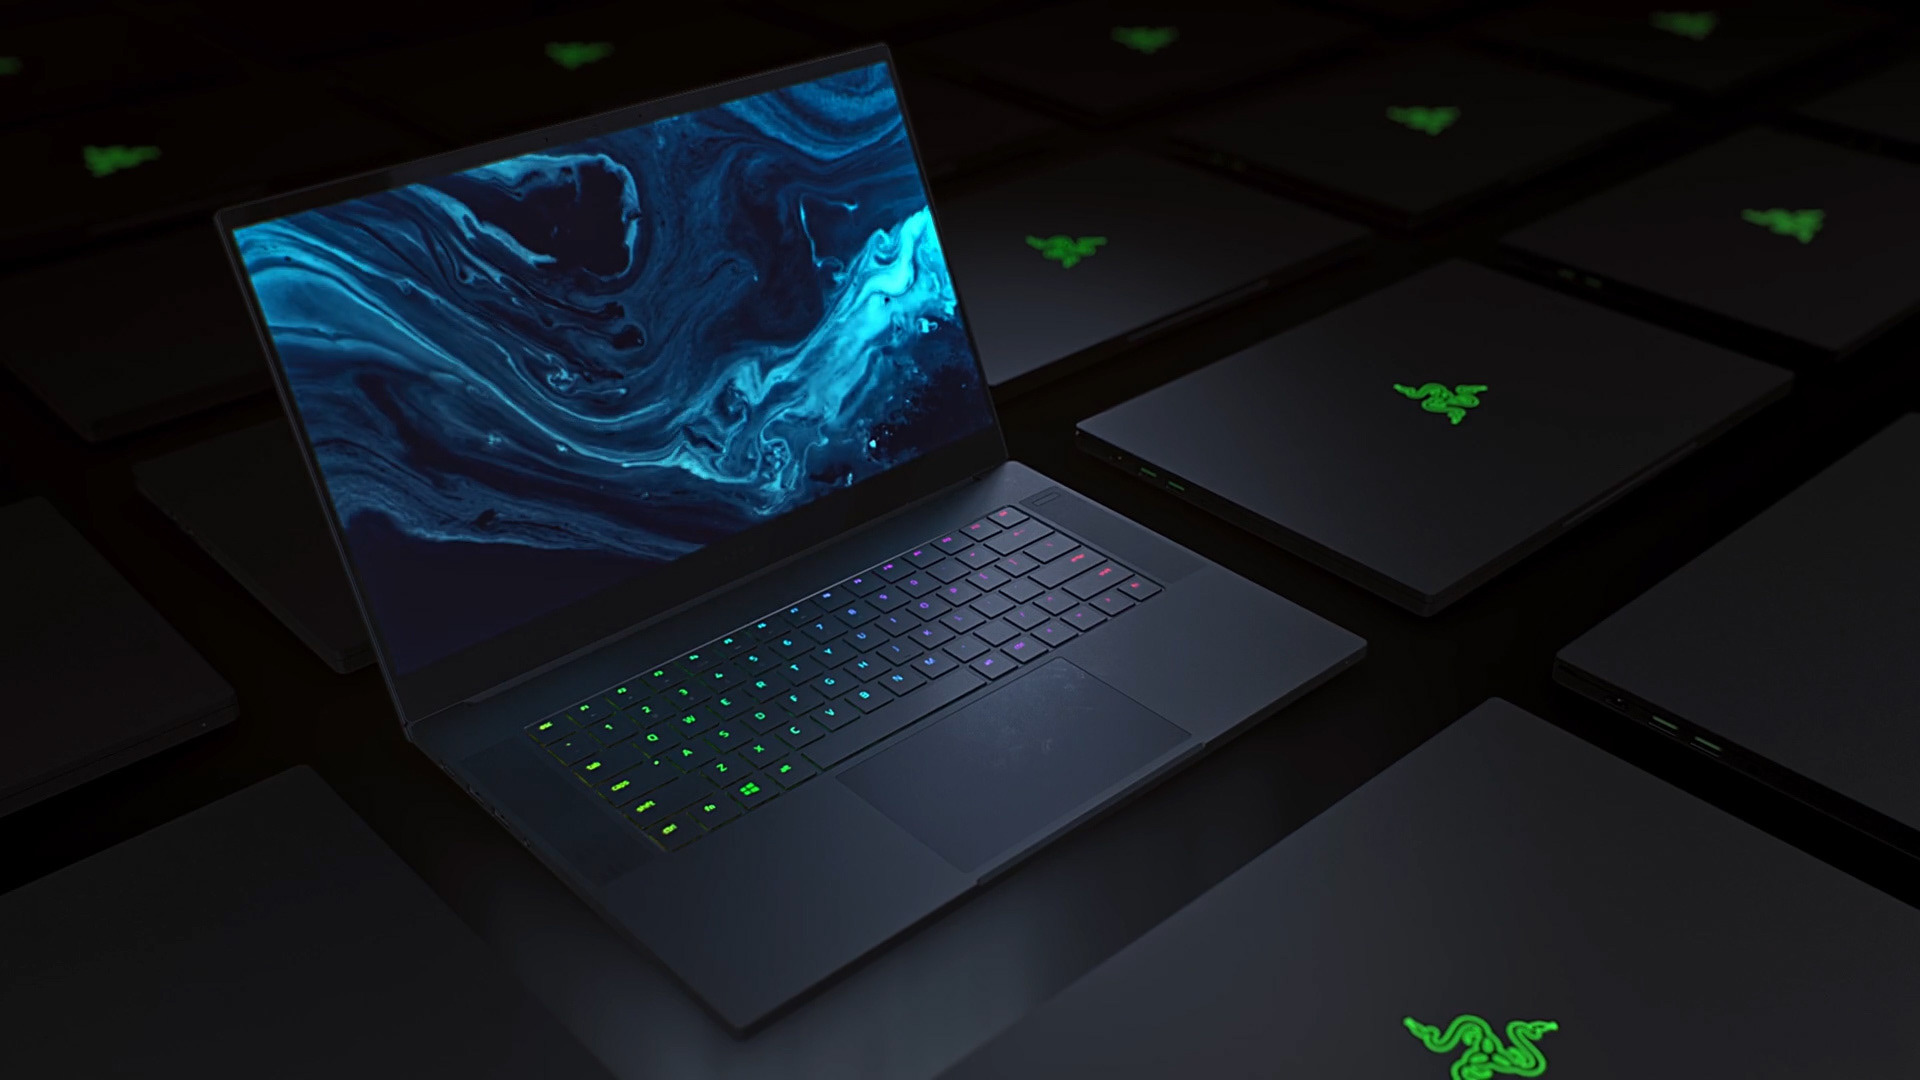 Razer Blade 15: The Power Pack Smallest Laptop for Fierce Gamers